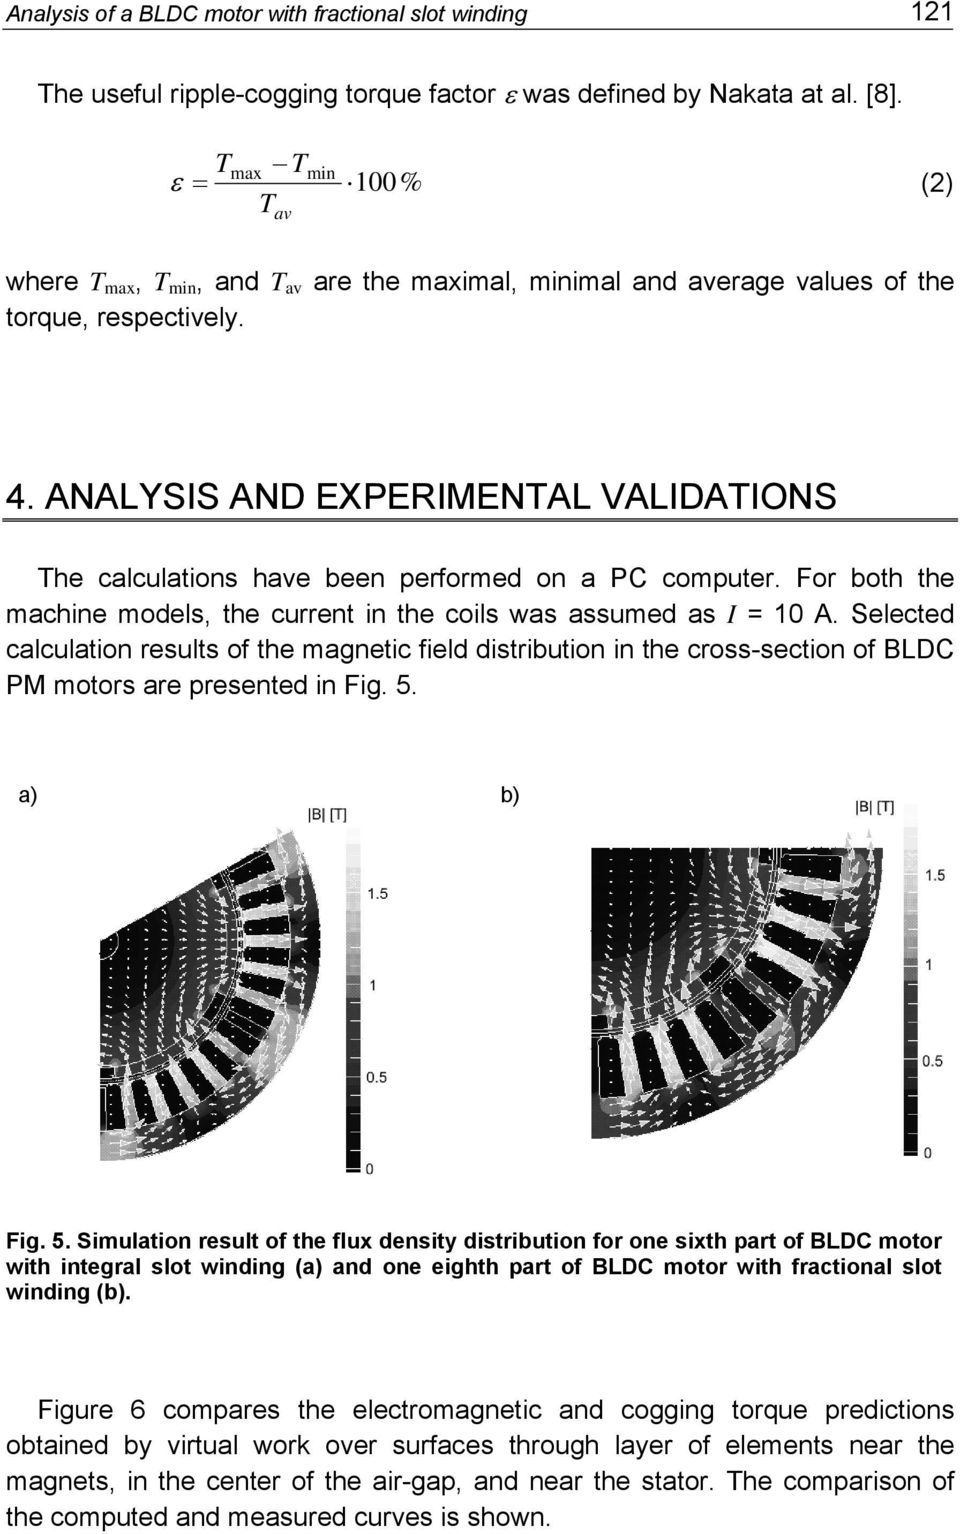 ANALYSIS OF A BLDC MOTOR WITH FRACTIONAL SLOT WINDING - PDF